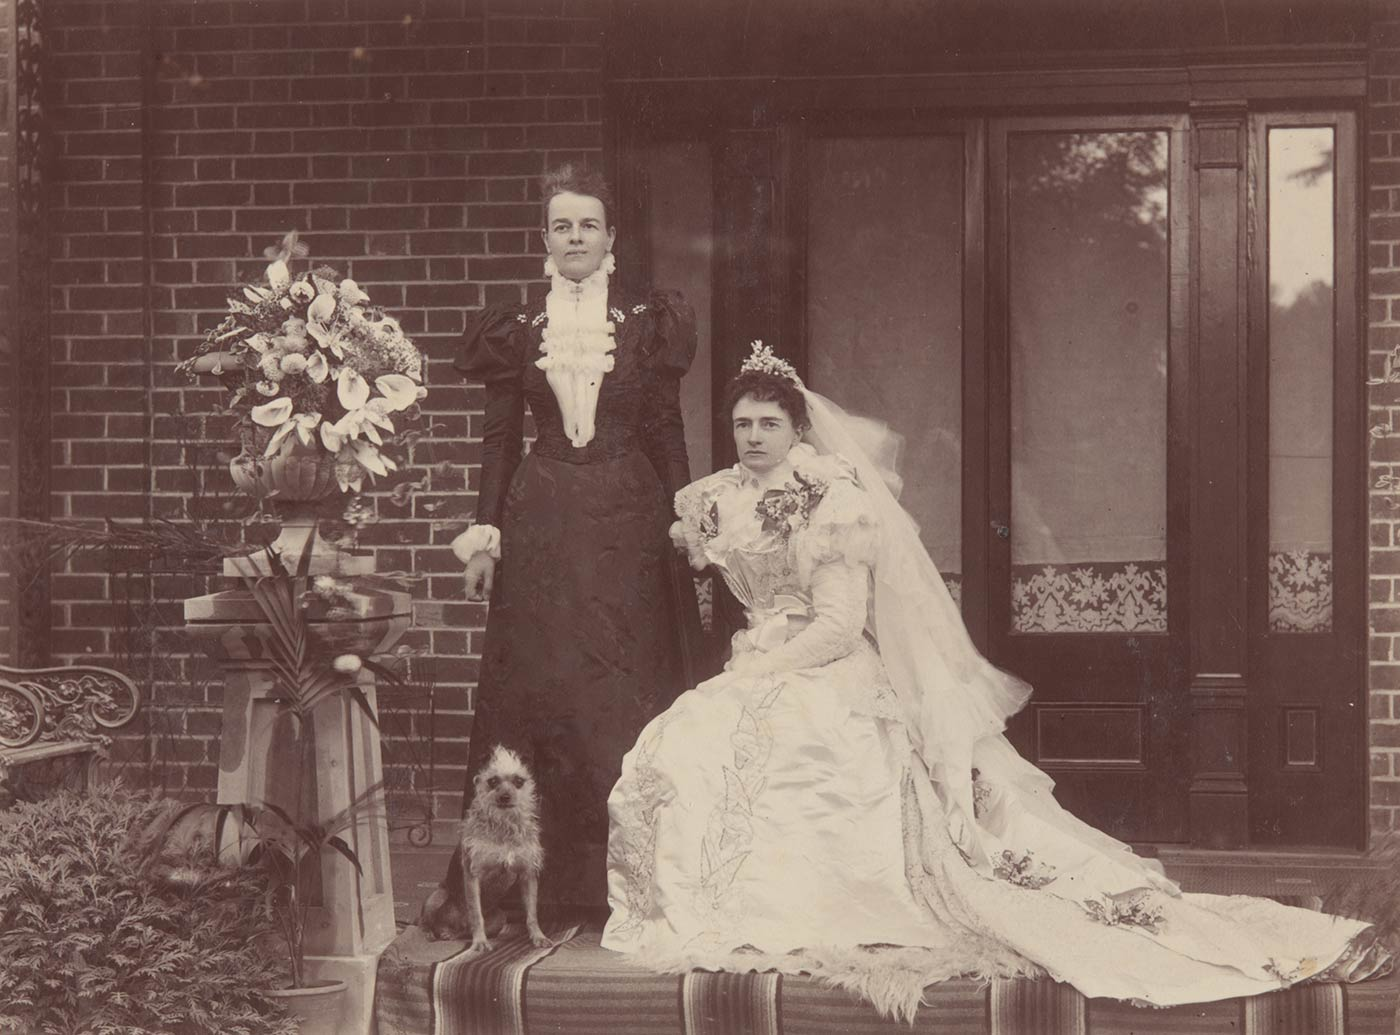 Black and white photo of a woman in a wedding dress and veil, seated. A woman in a dark dress stands at her left. A small terrier dog sits at her feet.